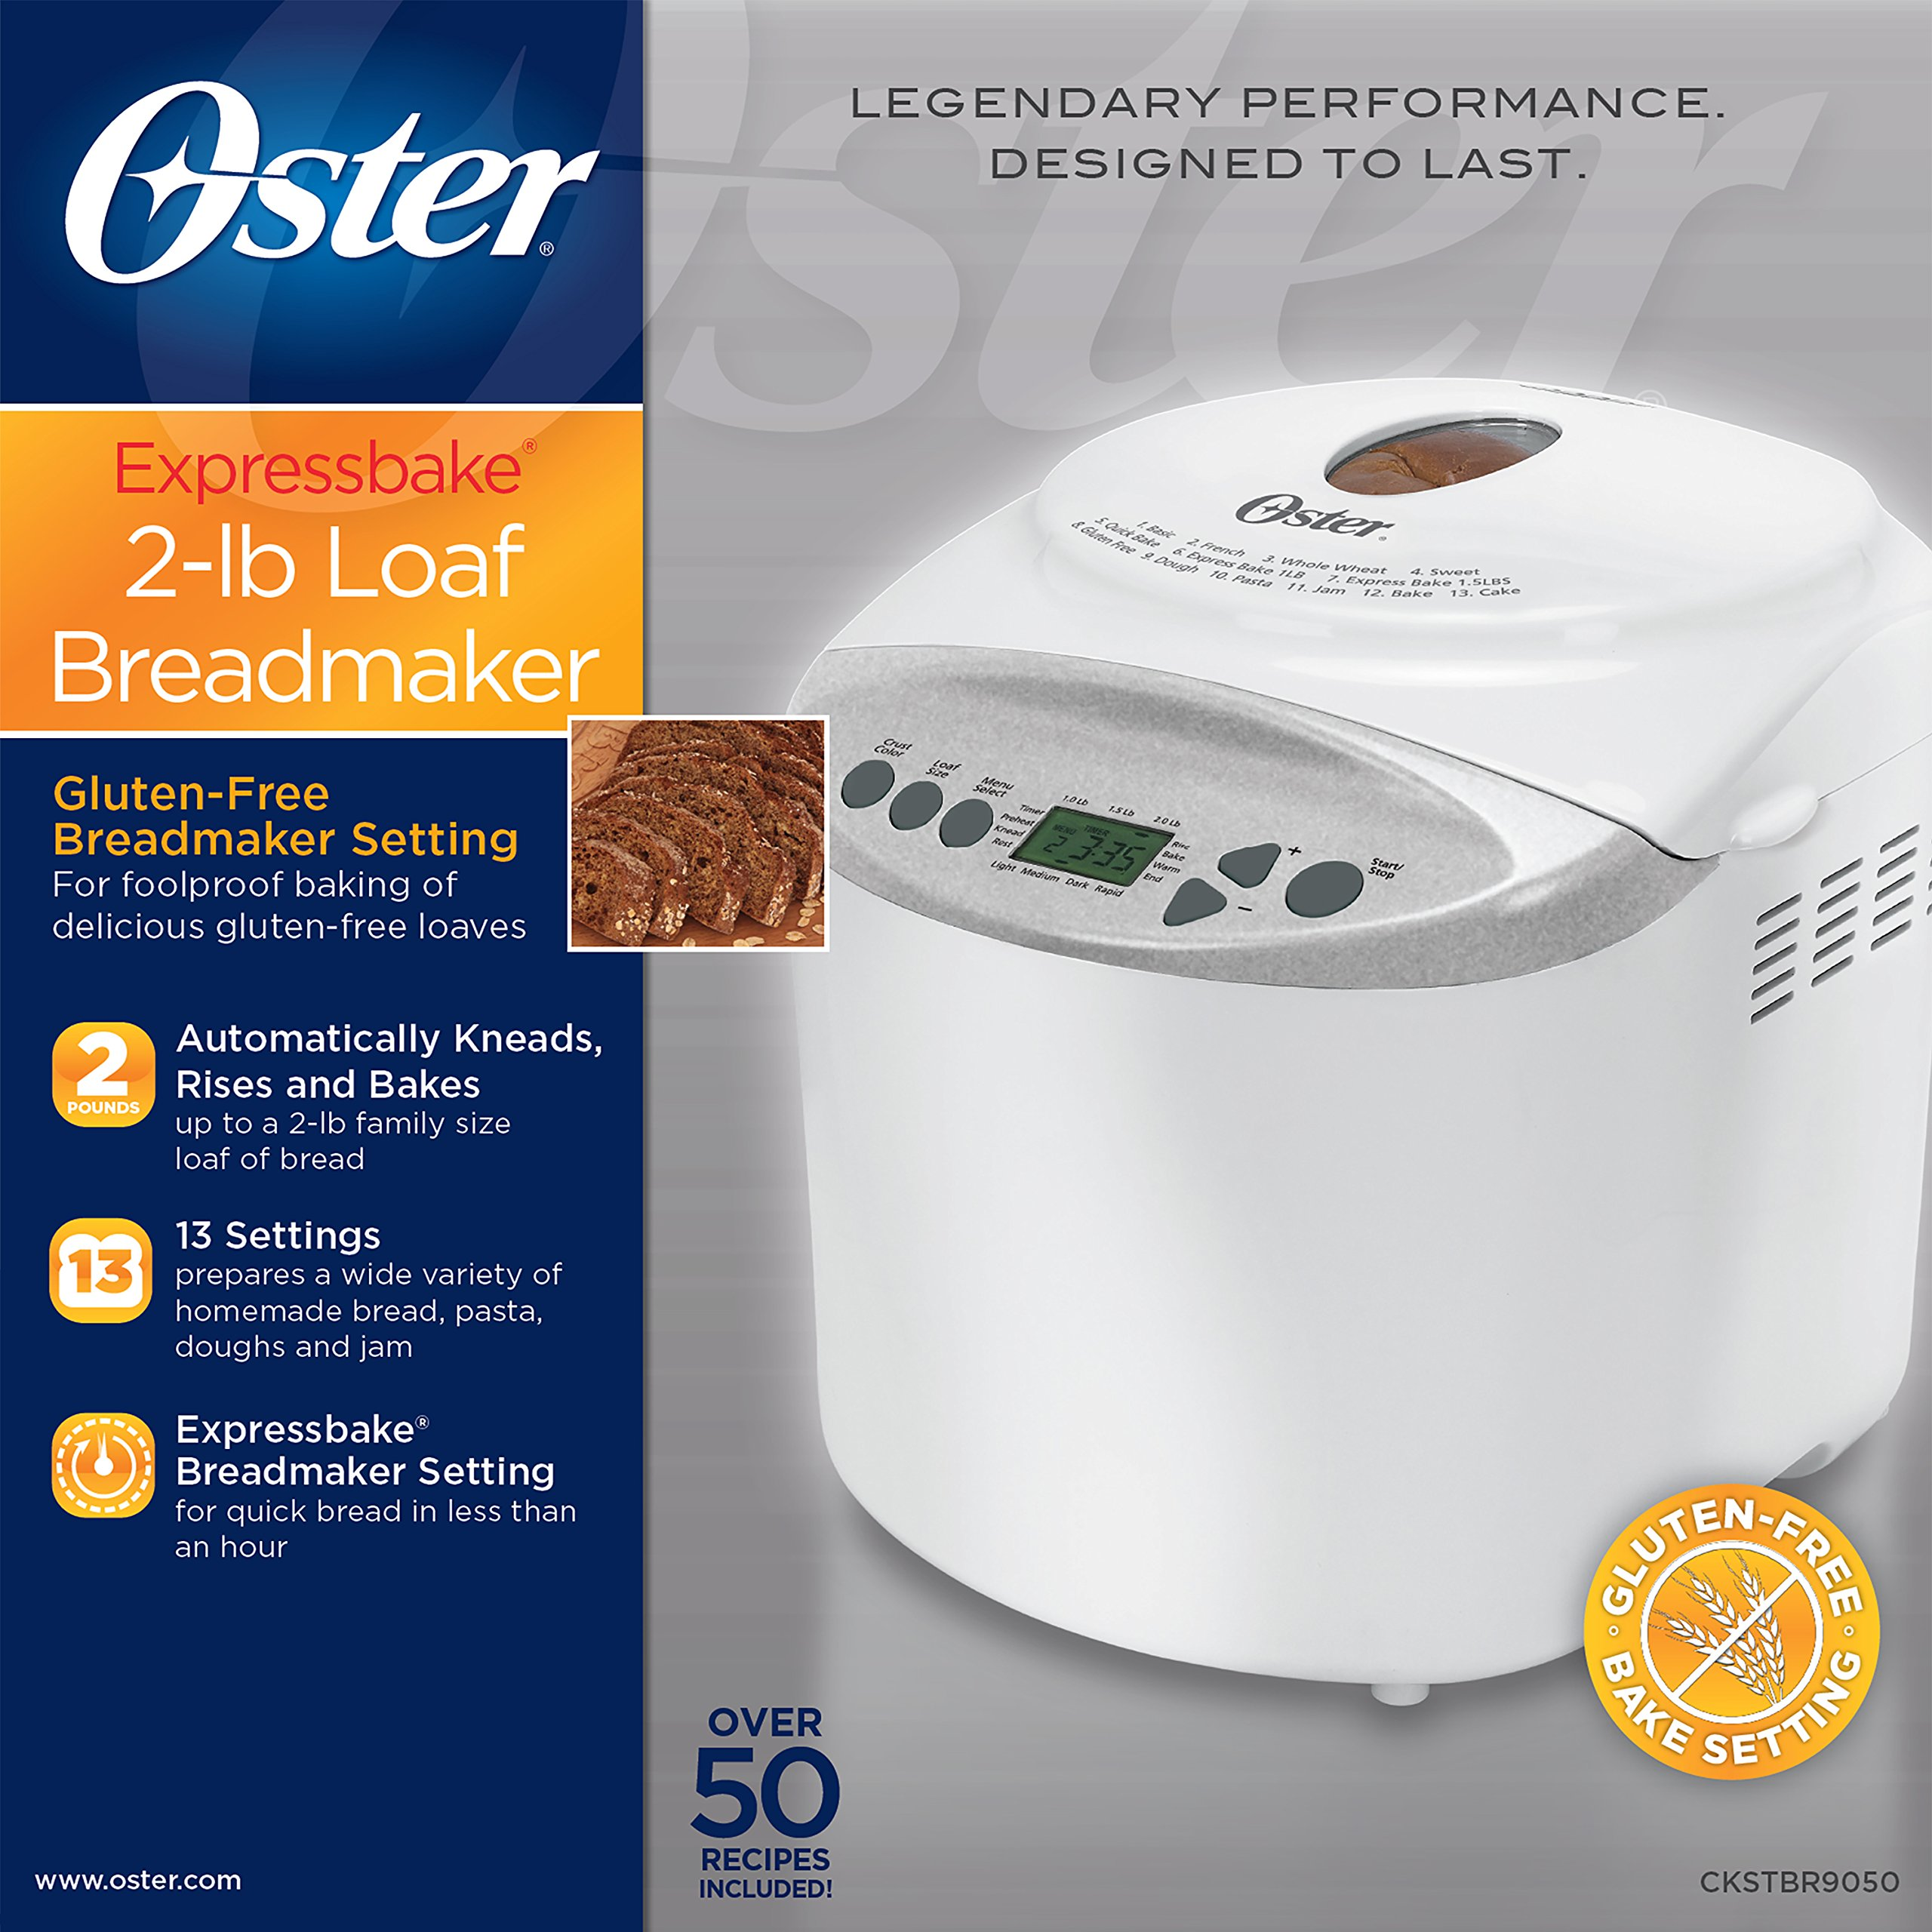 Oster Expressbake Bread Maker with Gluten-Free Setting, 2 Pound, White (CKSTBR9050-NP) by Oster (Image #4)